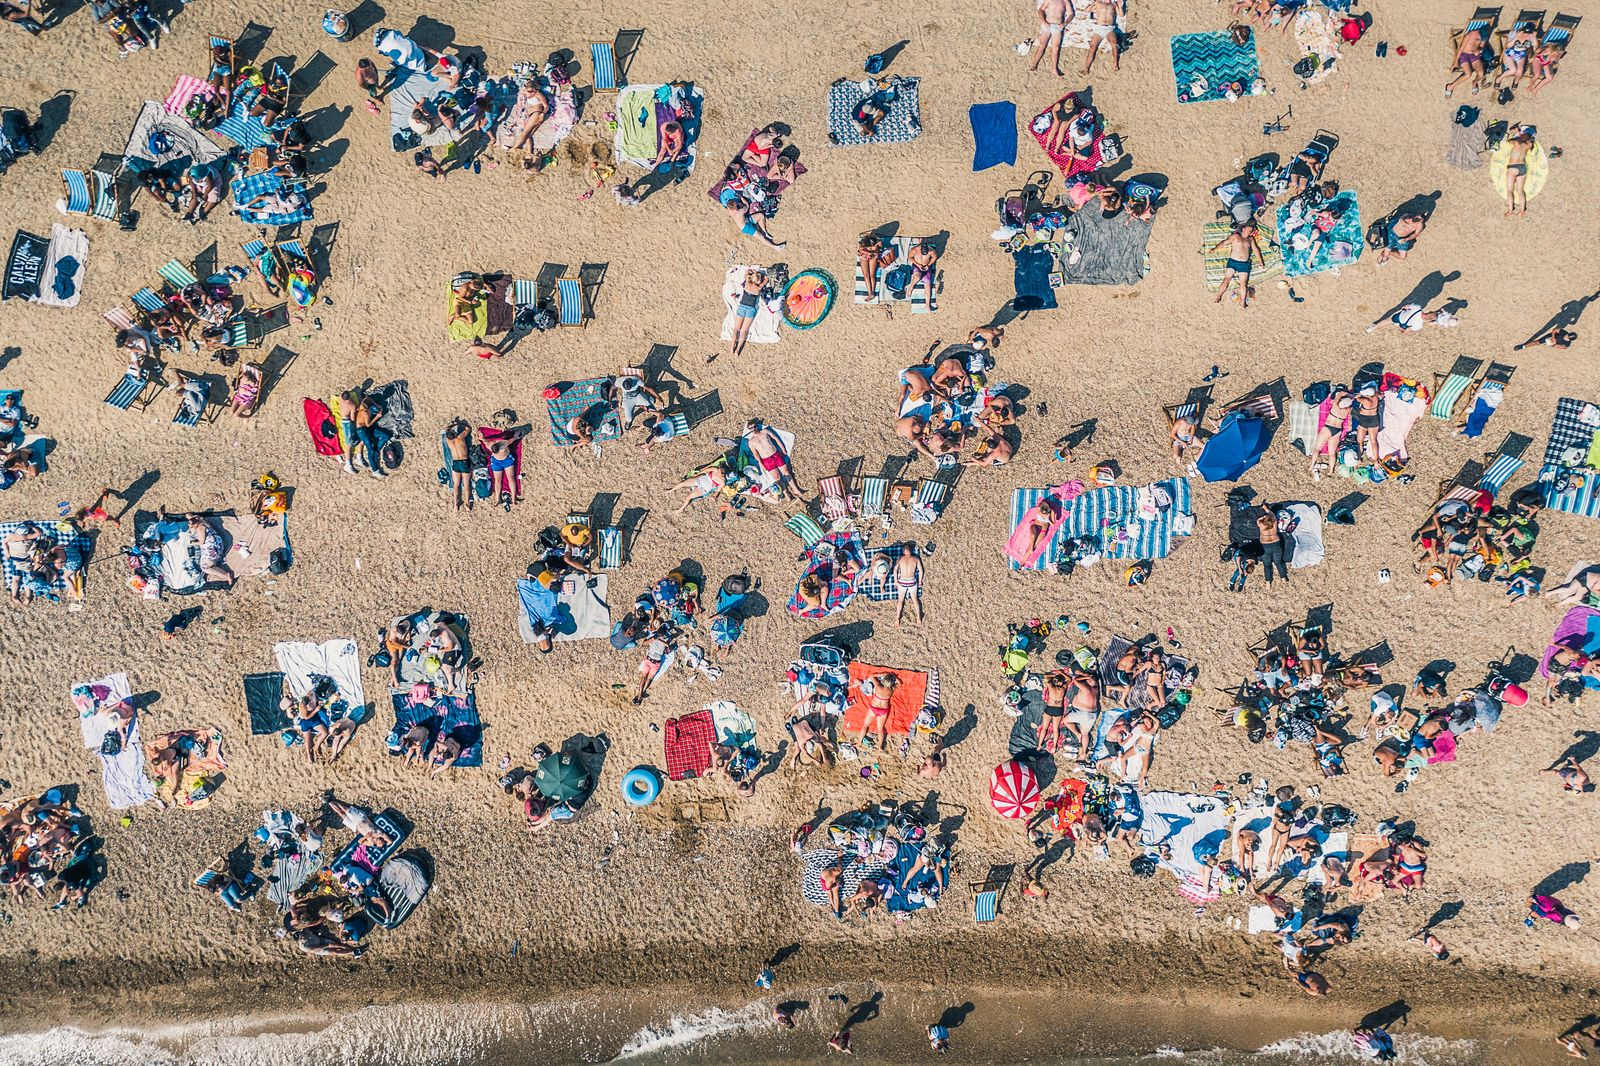 Sunbathers relaxing on Southend Beach as seen from directly above, Southend-on-Sea, Essex, United Kingdom